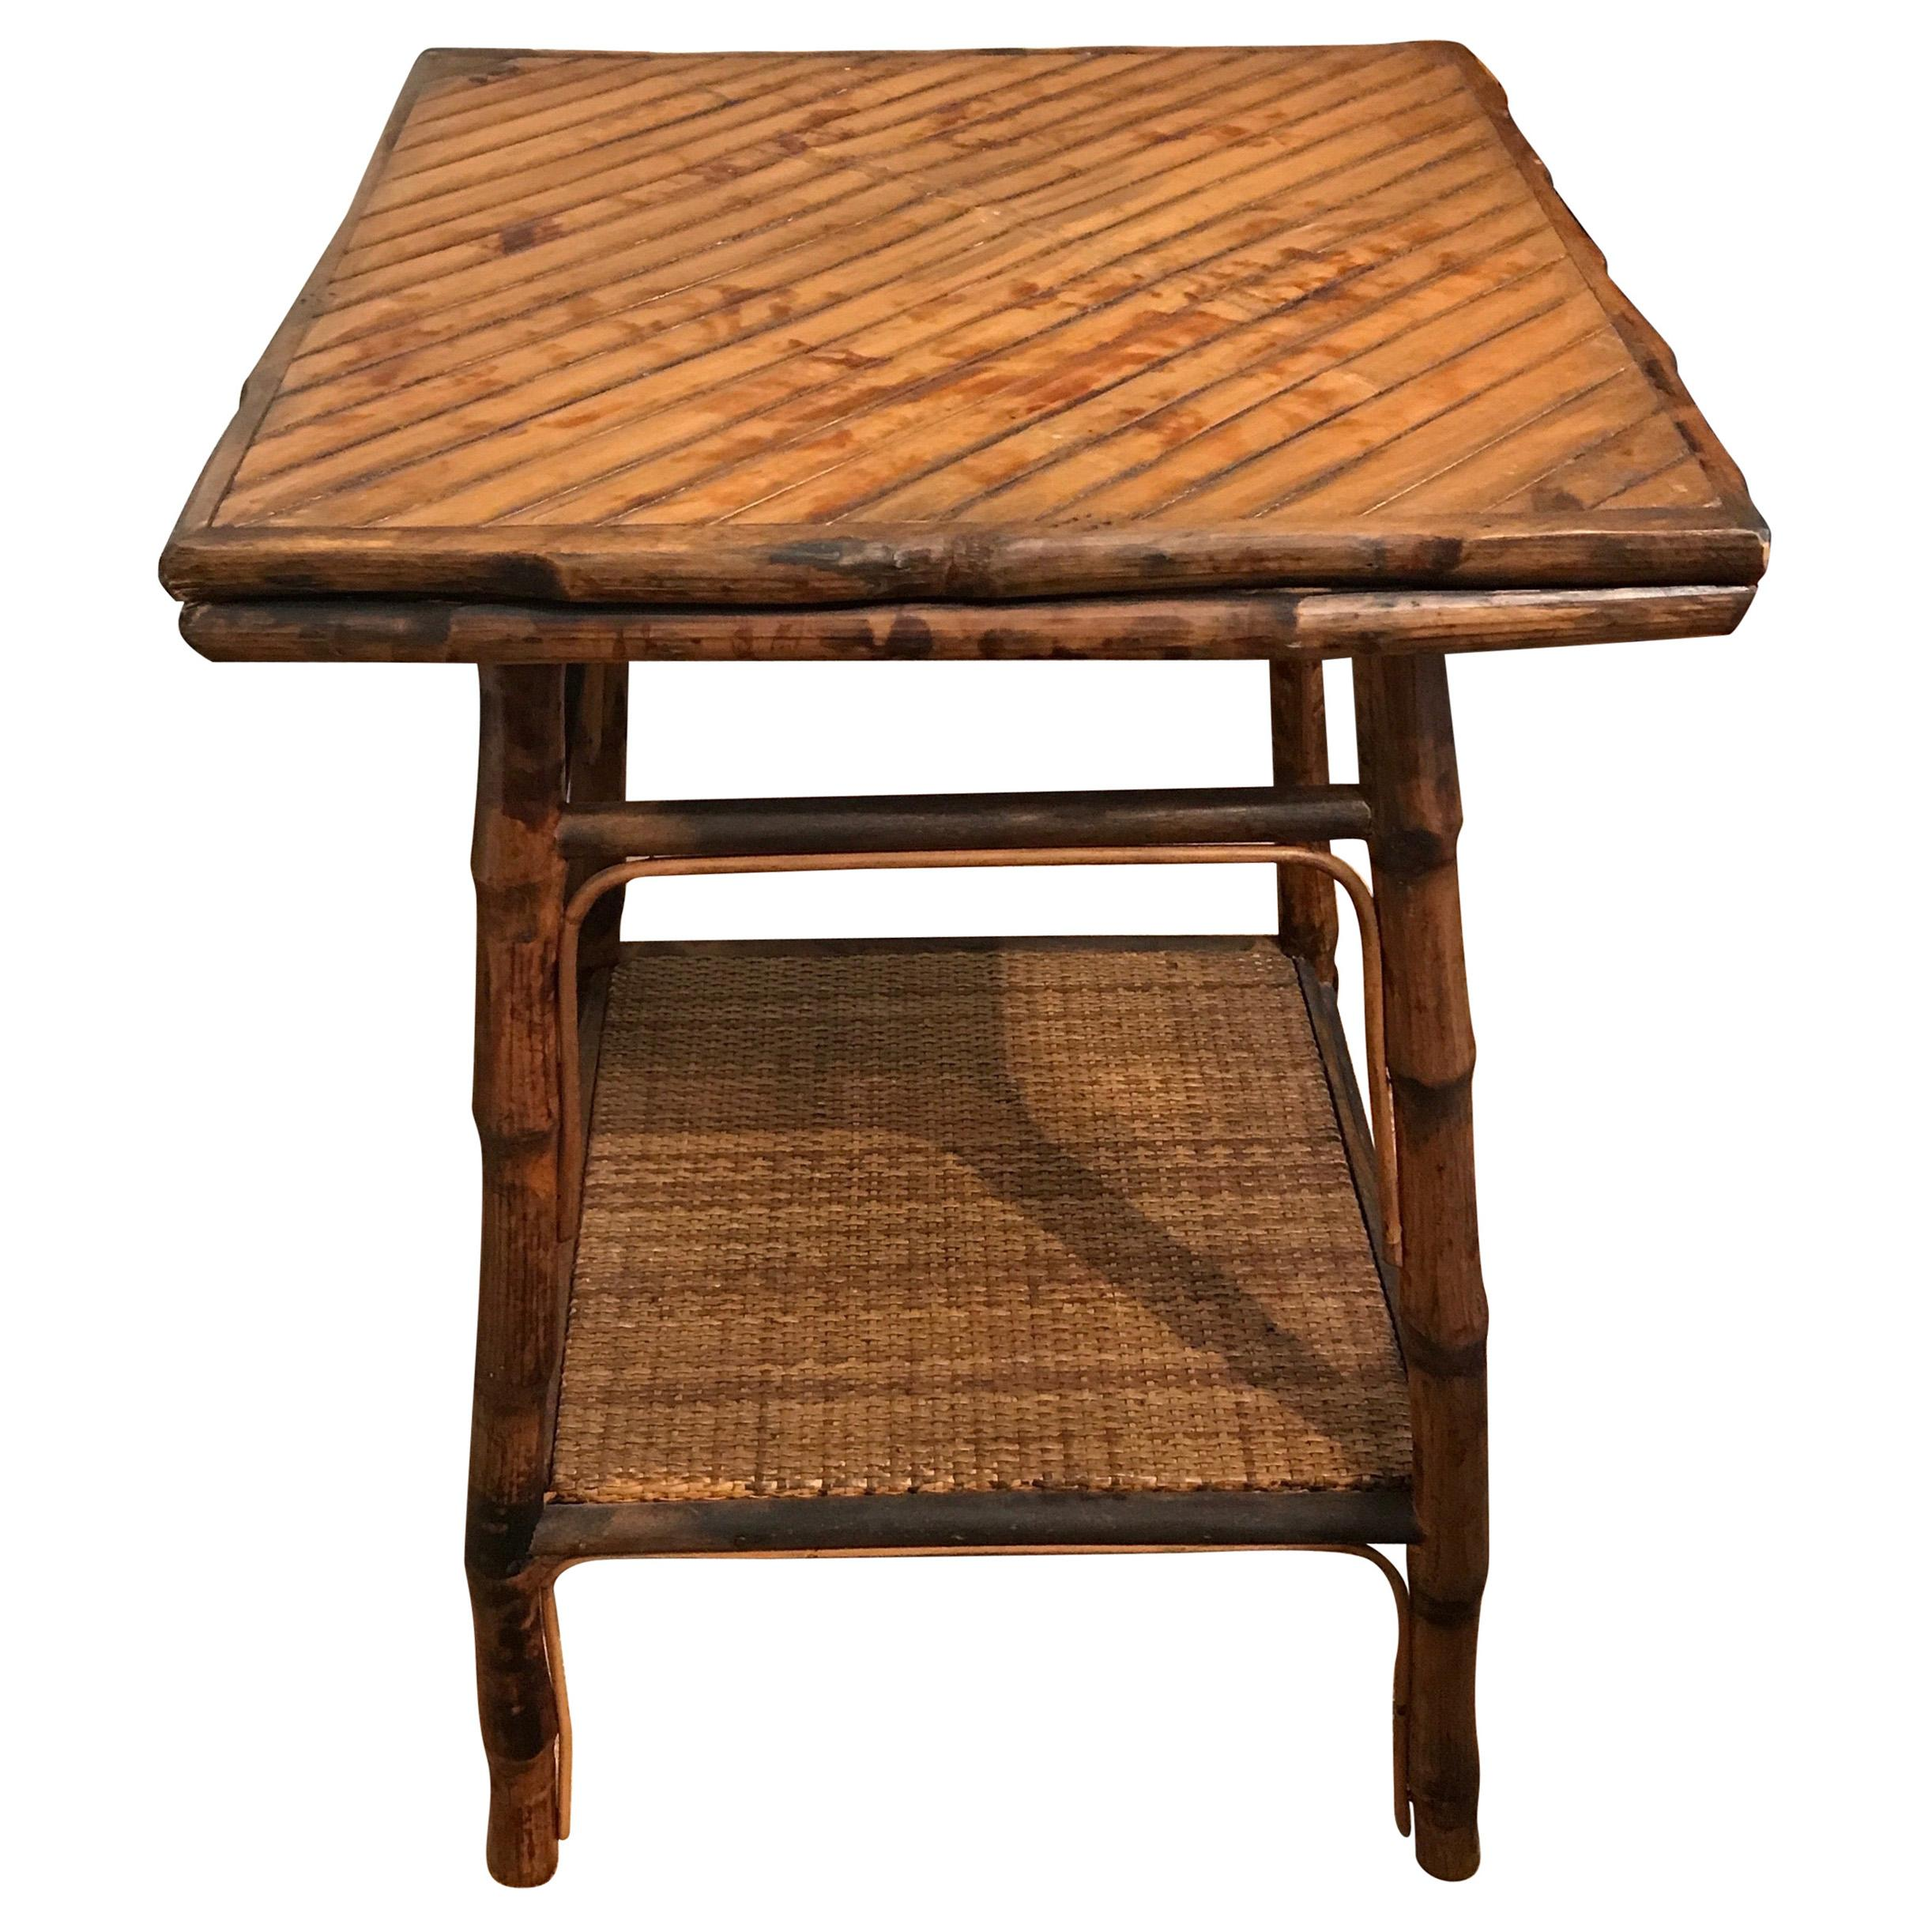 Vintage Burnt Bamboo Two-Tiered Table